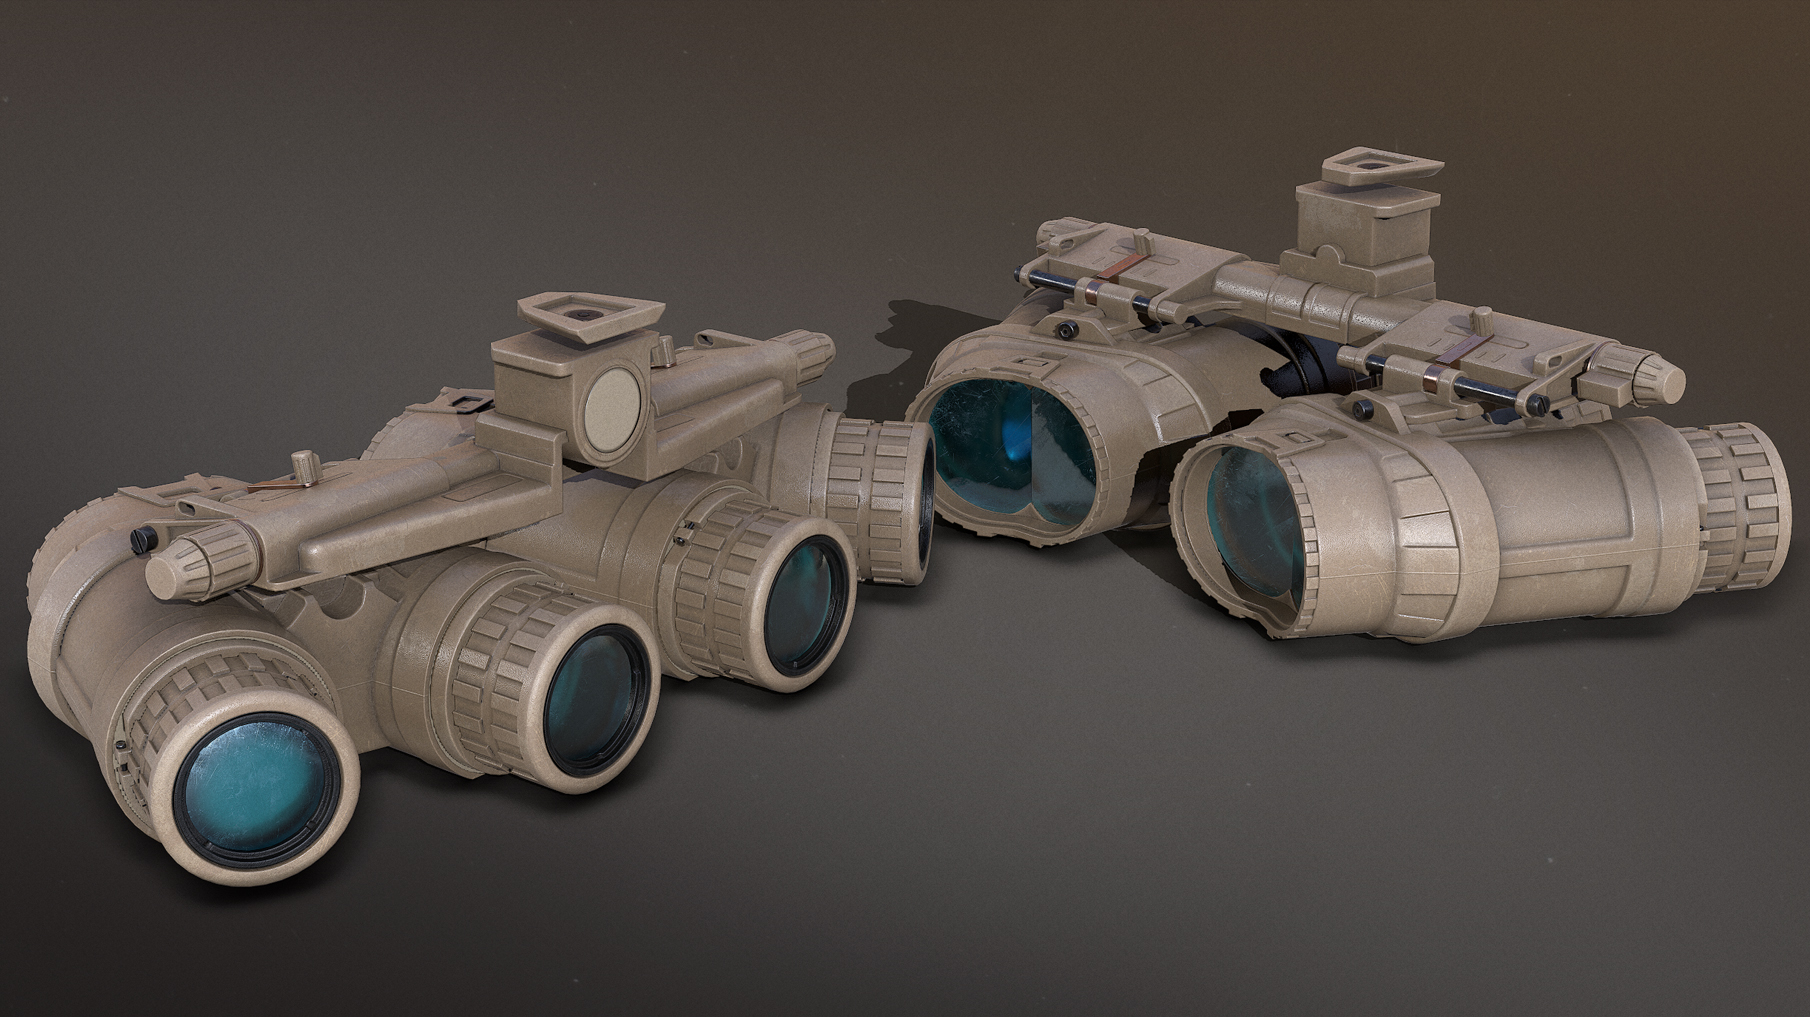 New model for the GPNVG, night vision goggles for the MARSOC faction.